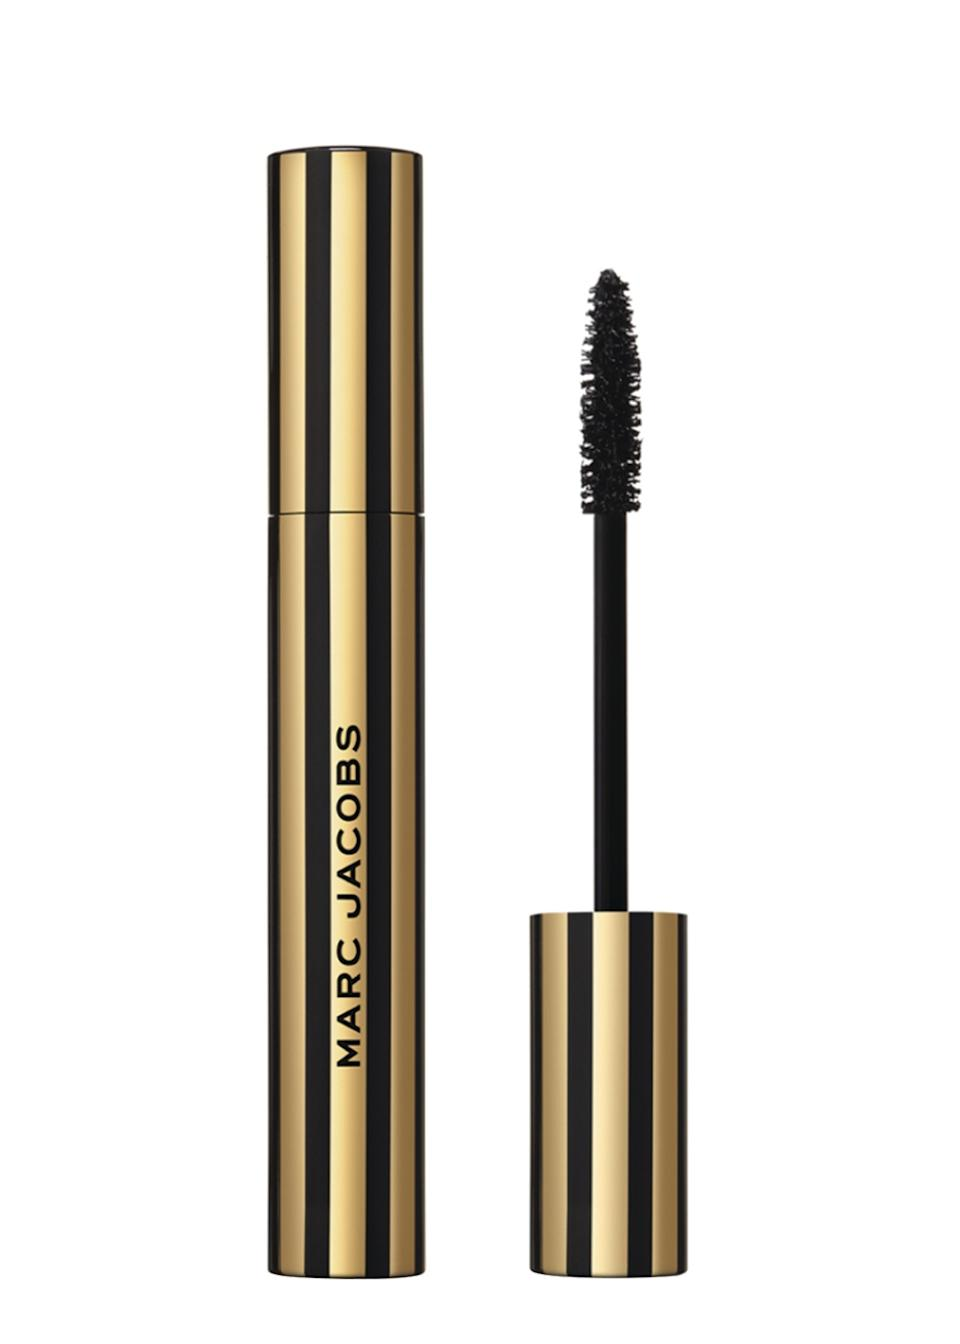 Marc Jacobs At Lash'd Lengthening and Curling Mascara [Photo via Sephora]